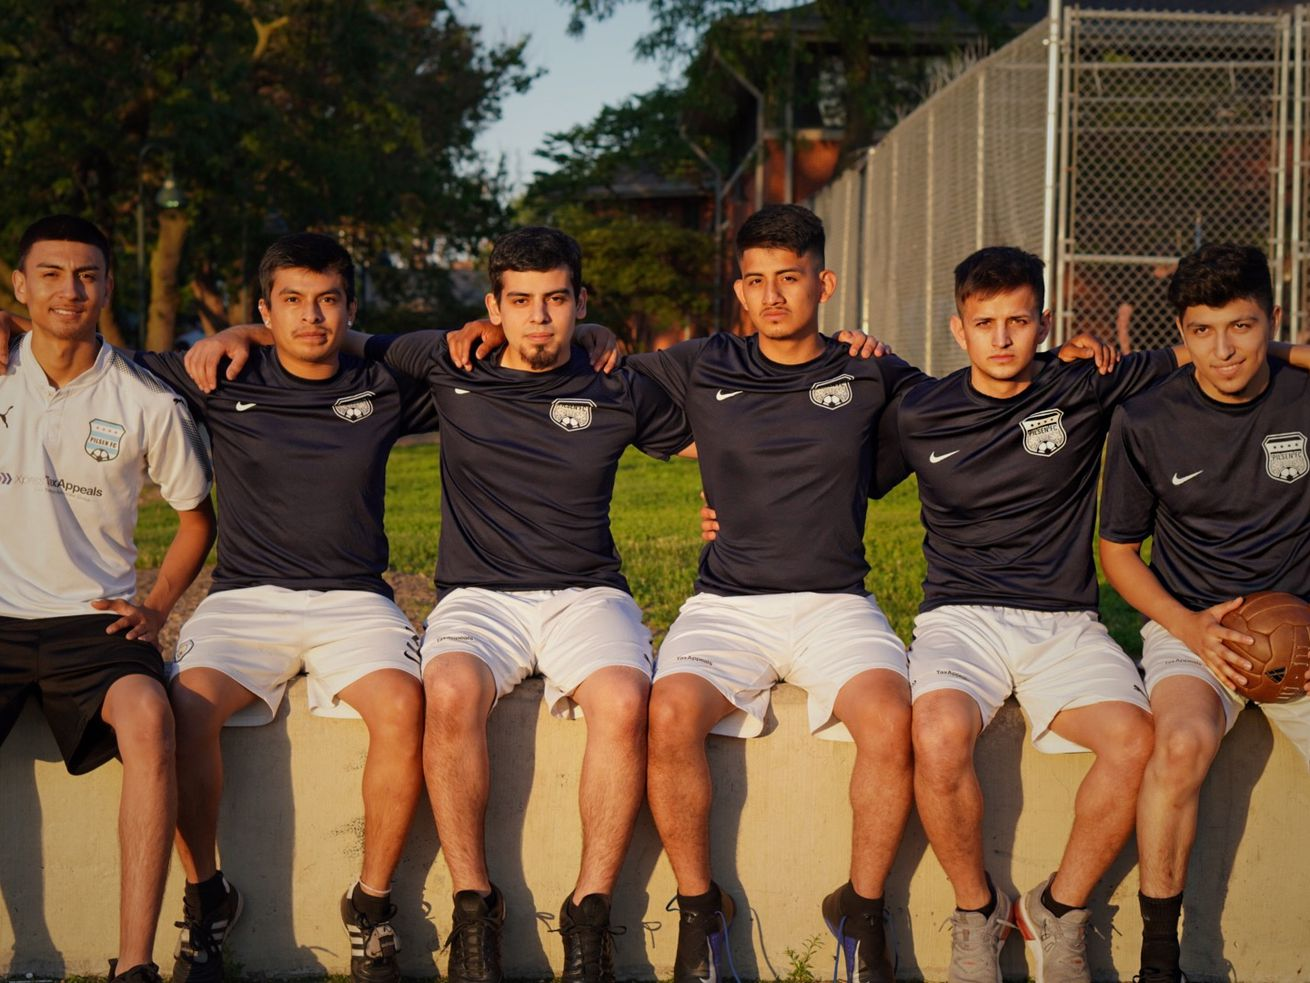 Saint Scrimmage is a documentary photo project created by Cami Thomas that highlights the underground soccer culture Pilsen F.C. is part of.